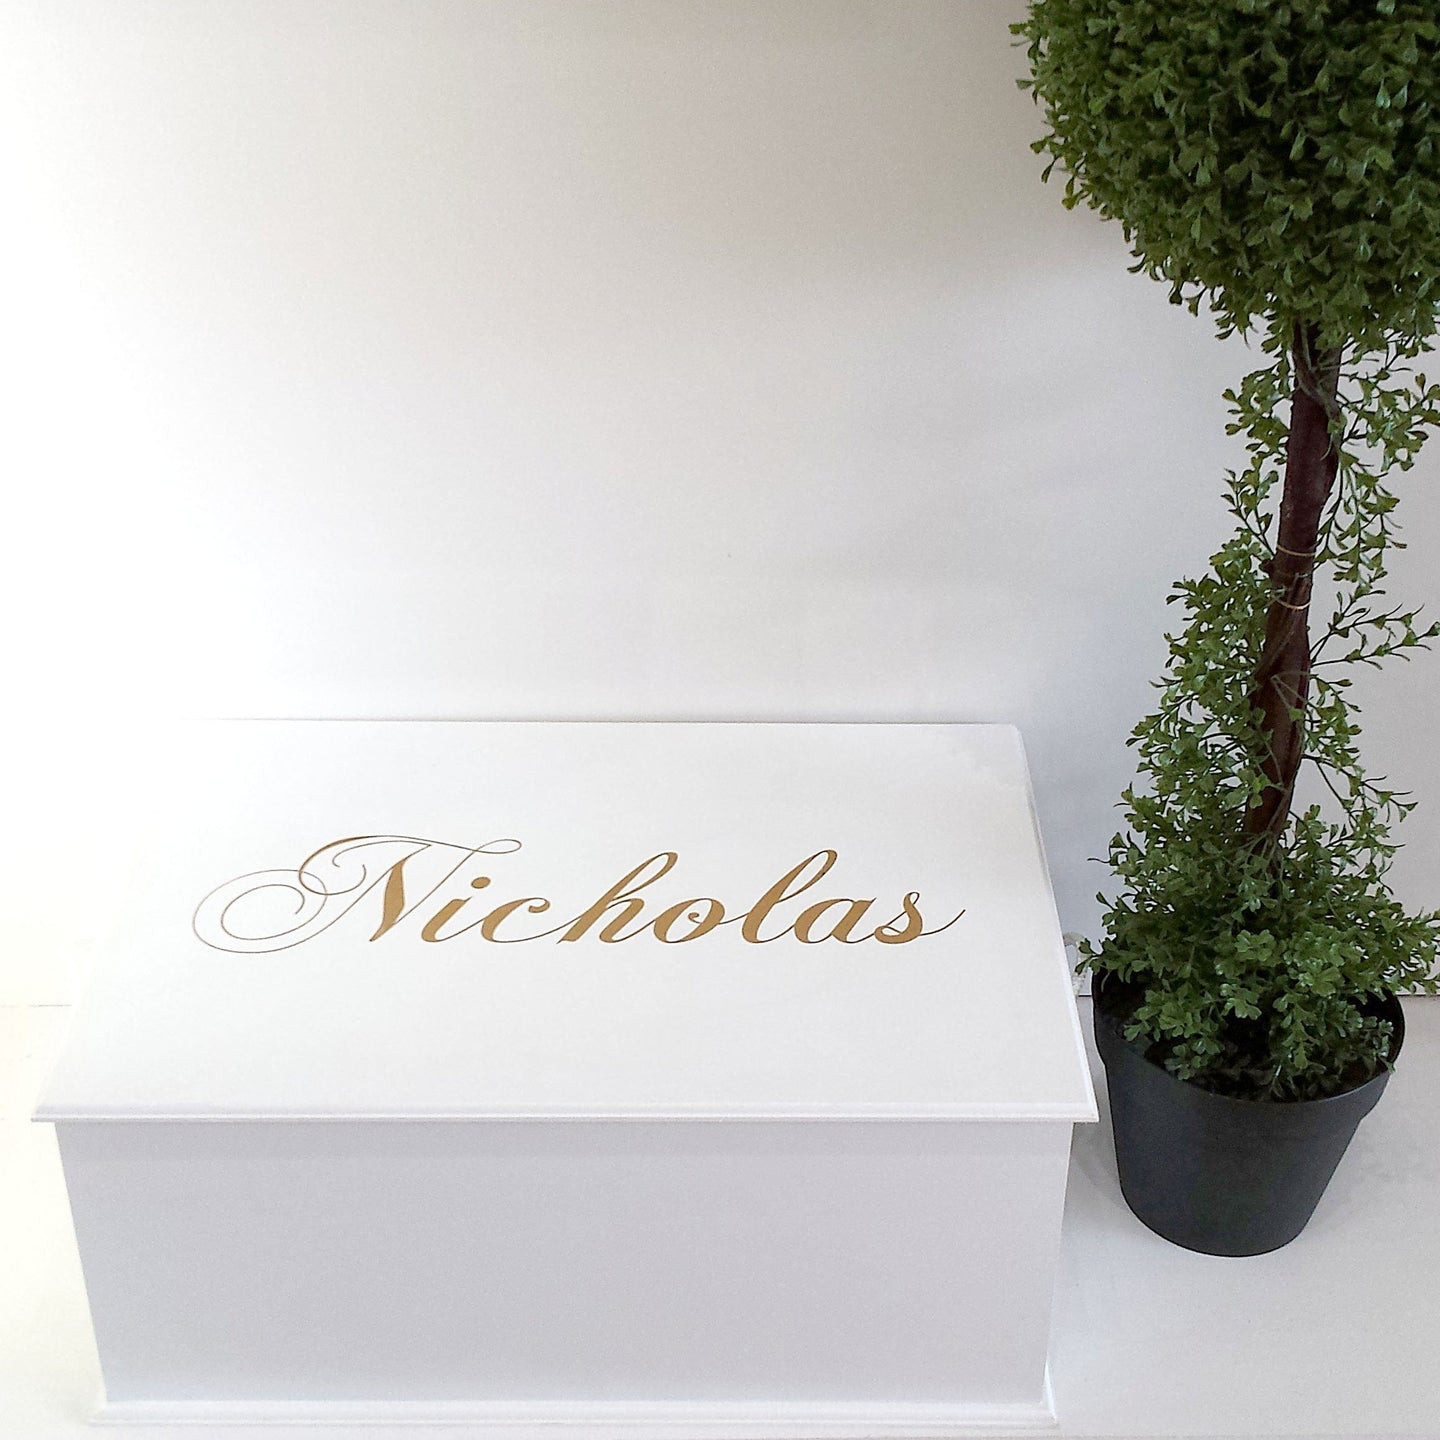 nicholas-handmade-boys-christening-wooden-box